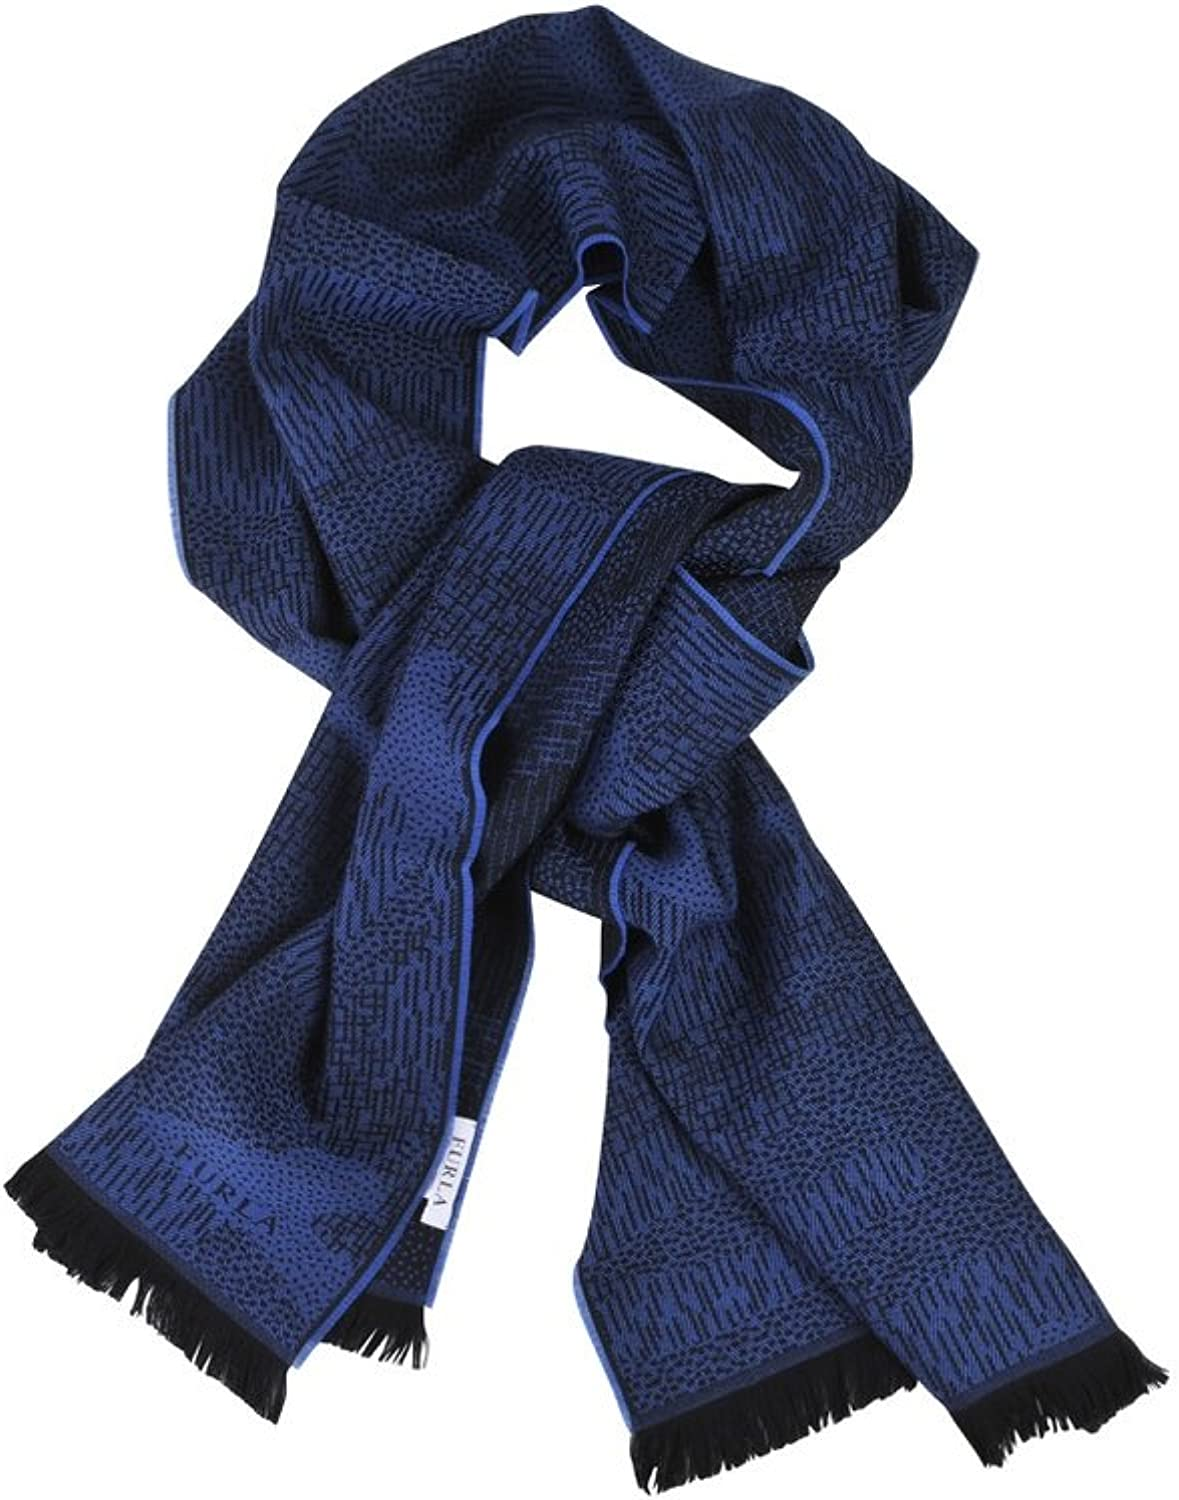 Furla Scarf Women's bluee Black Geometric pattern Wool 35 cm x 180 cm